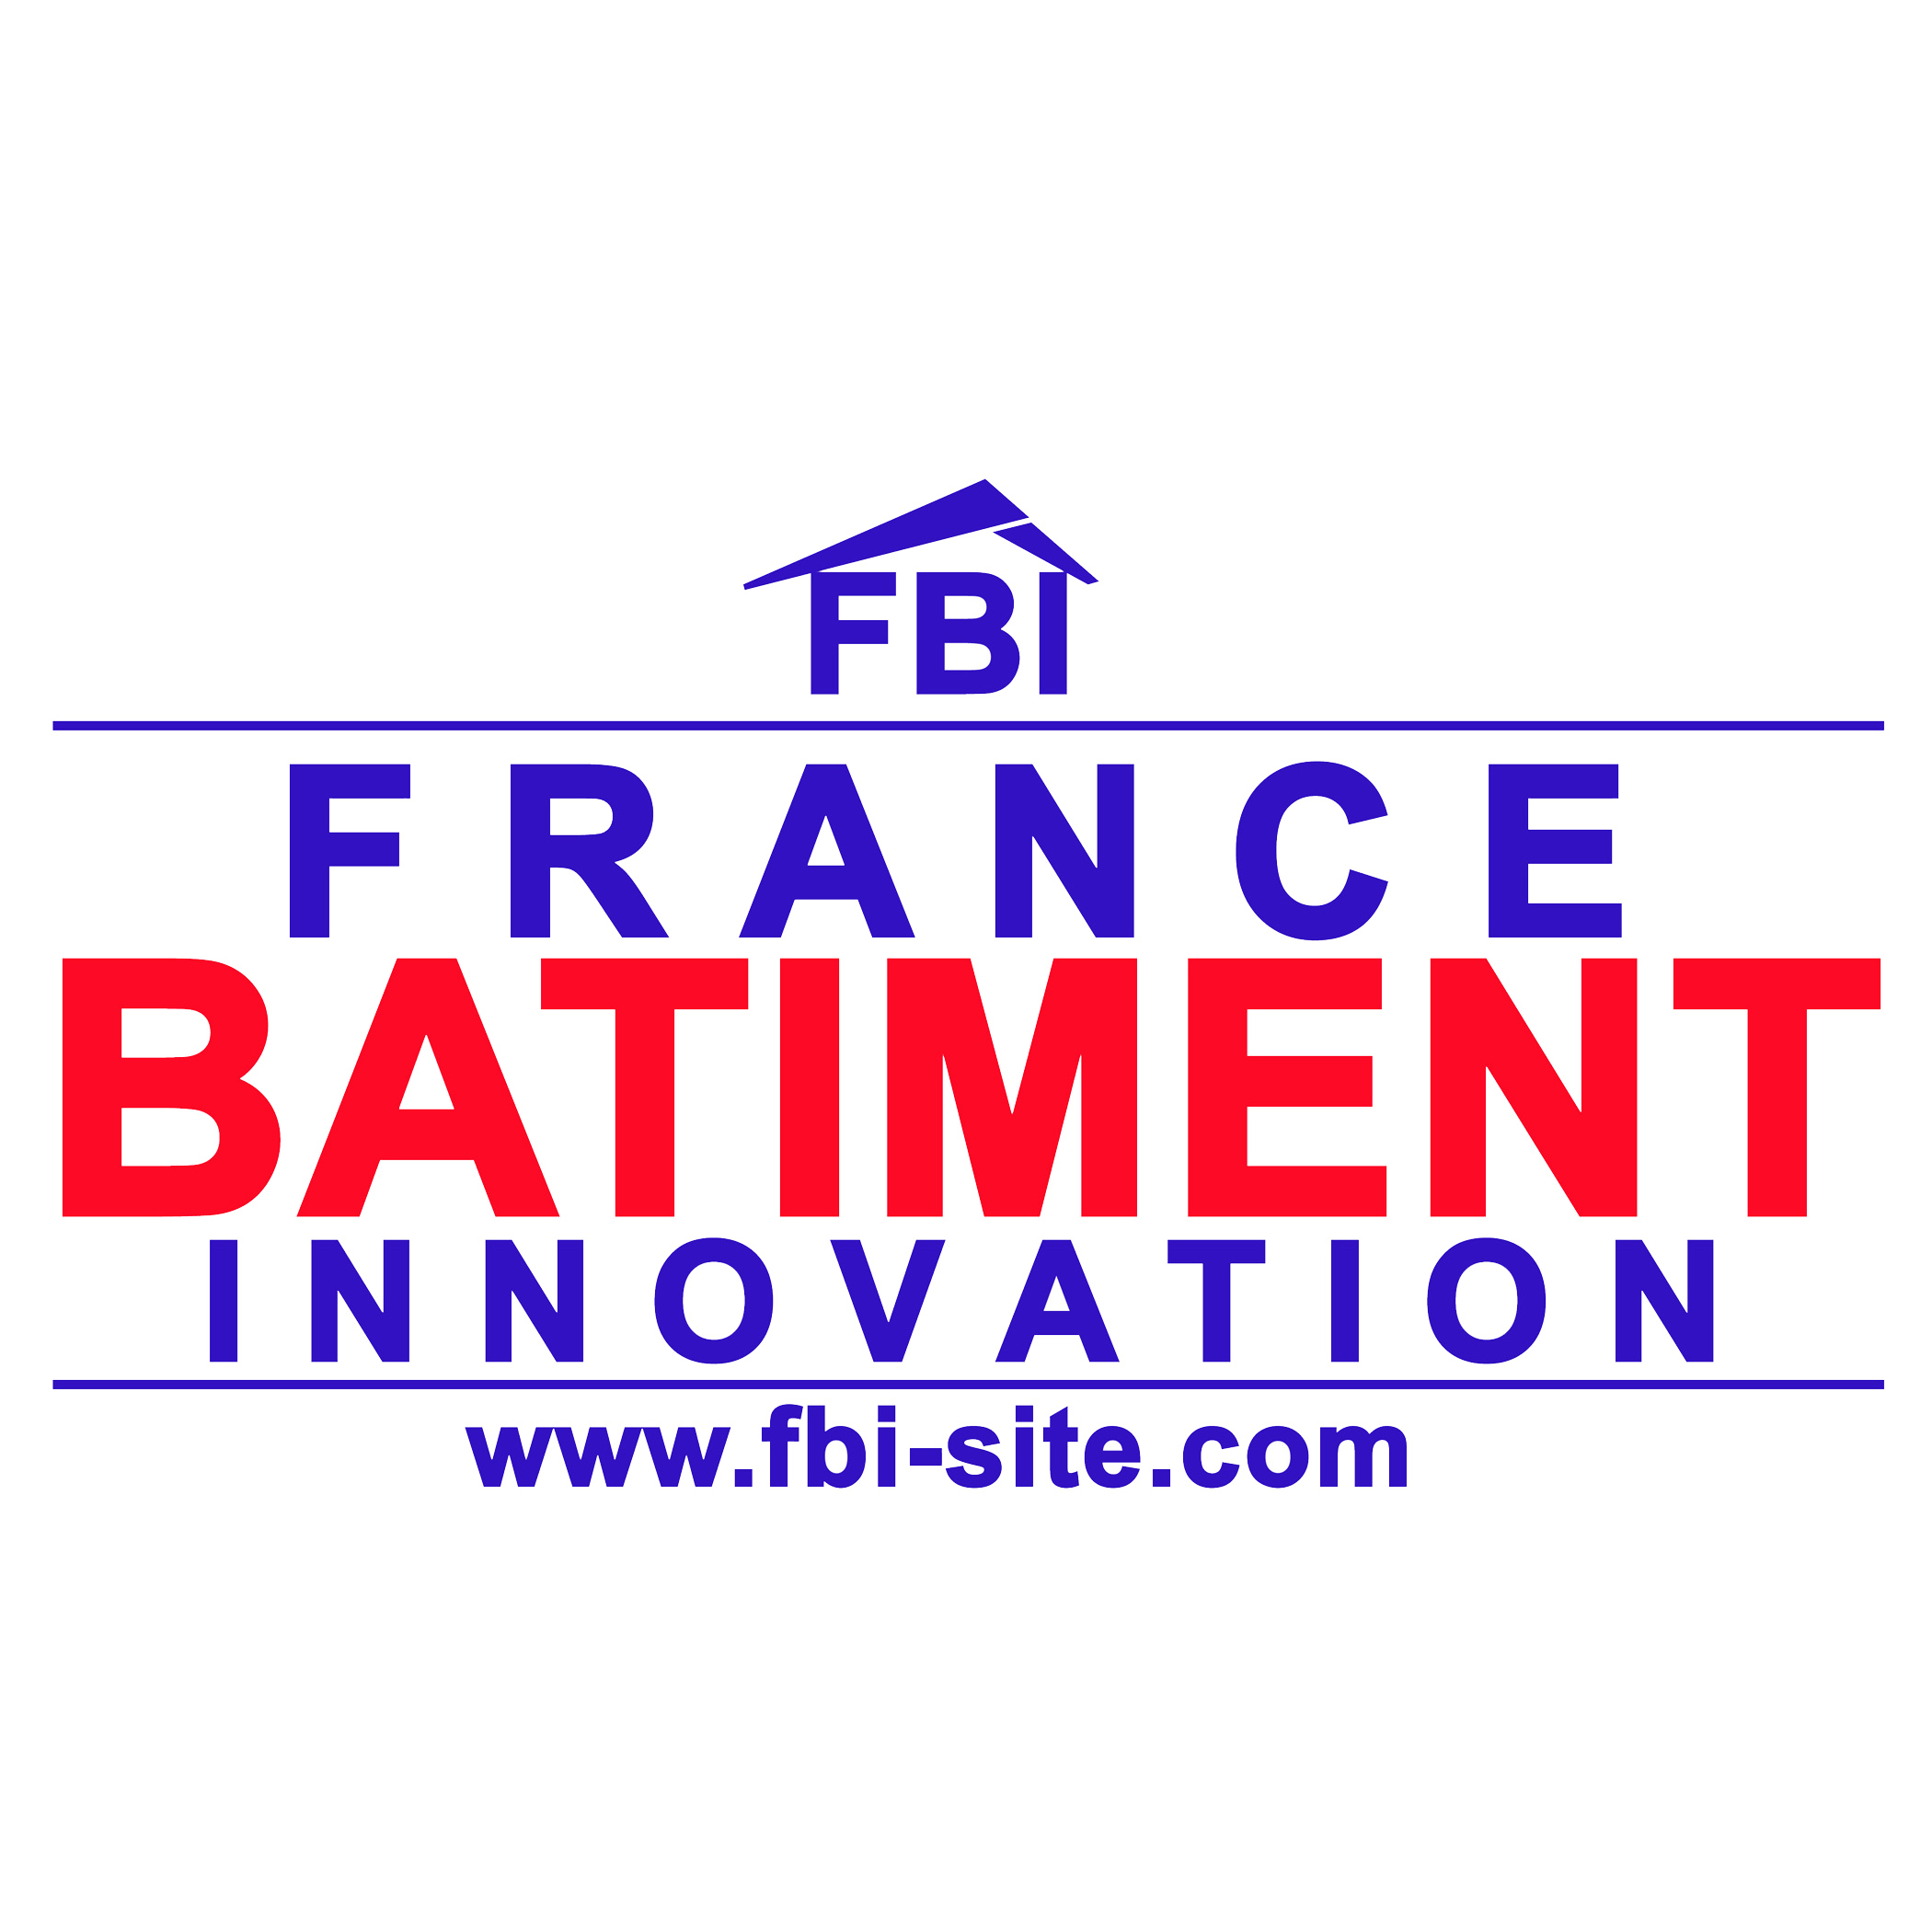 Société FRANCE BATIMENT INNOVATION